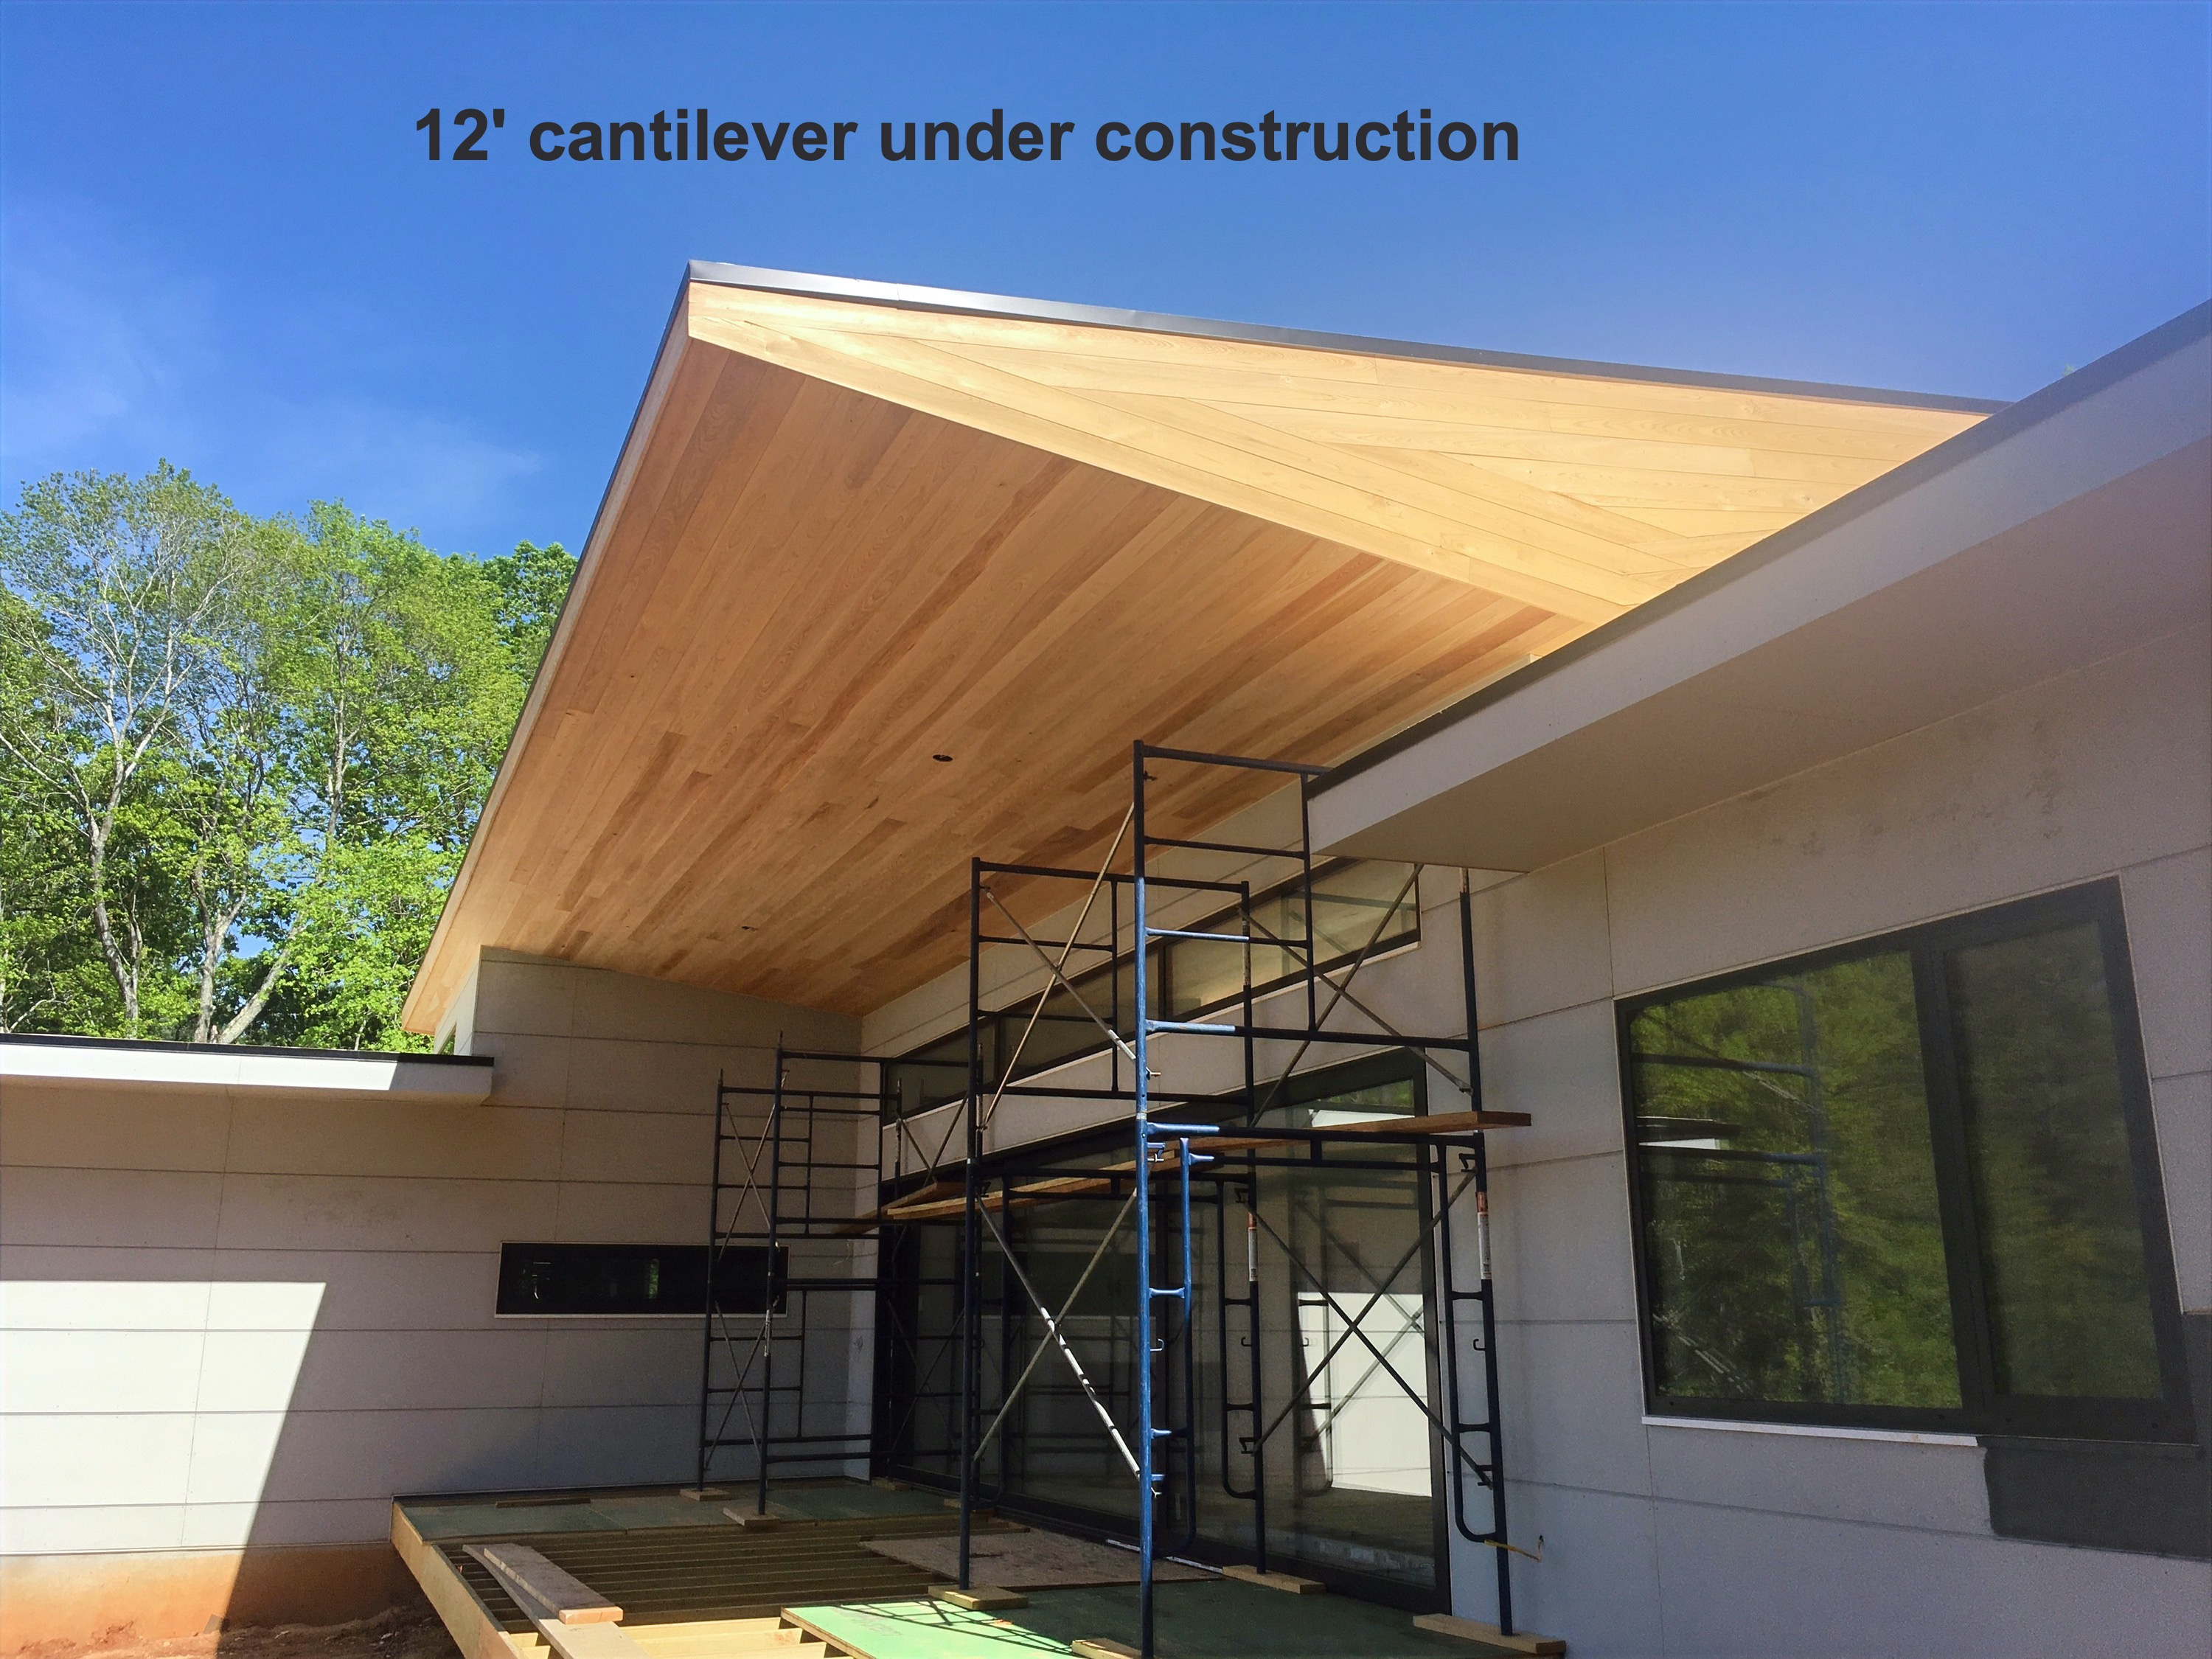 12' cantilever roof over the deck